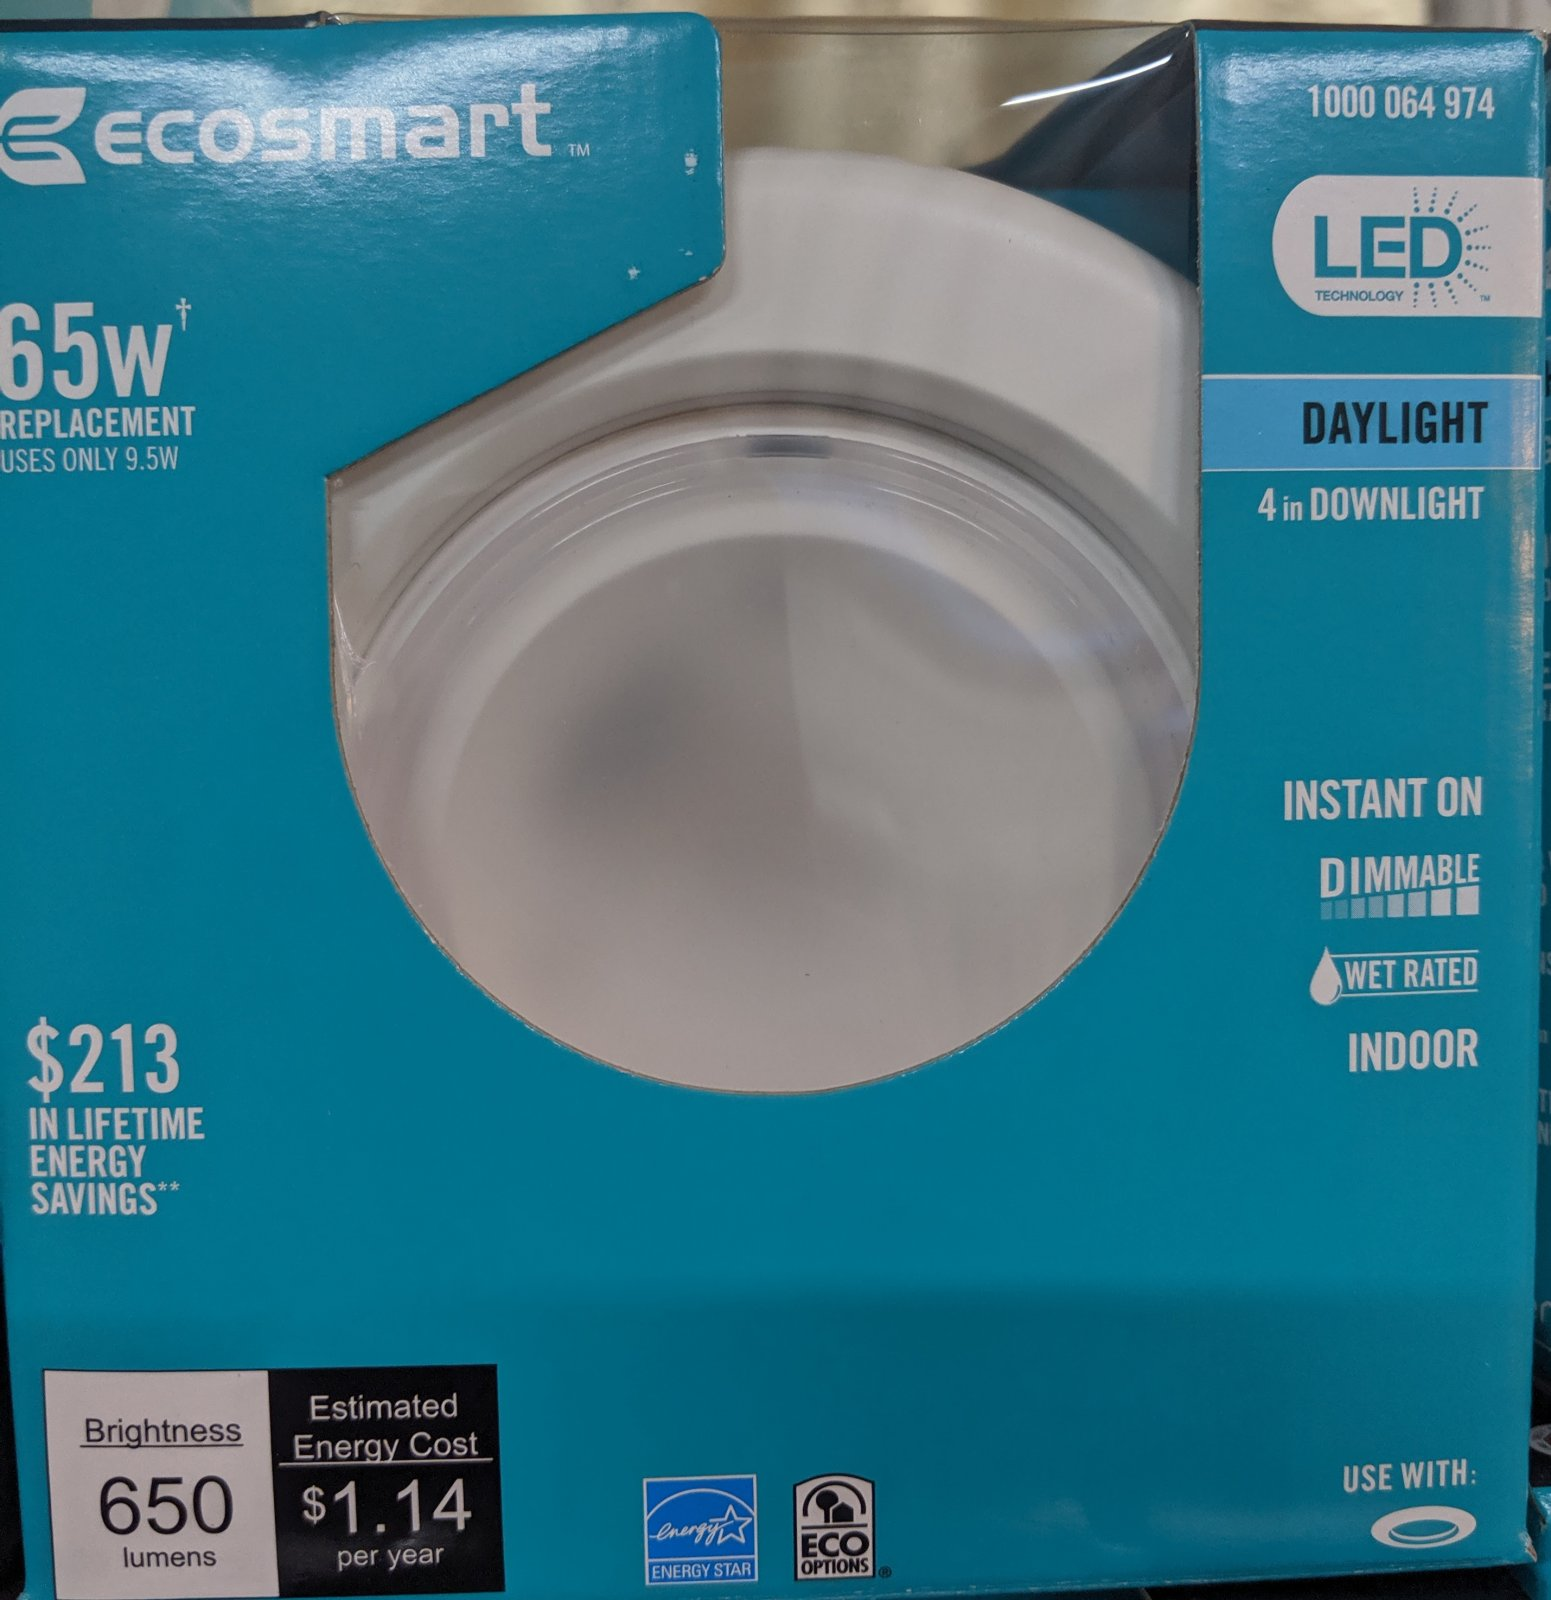 Ecosmart 65Watt Recessed Downlight Daylight Dimmable LED Light